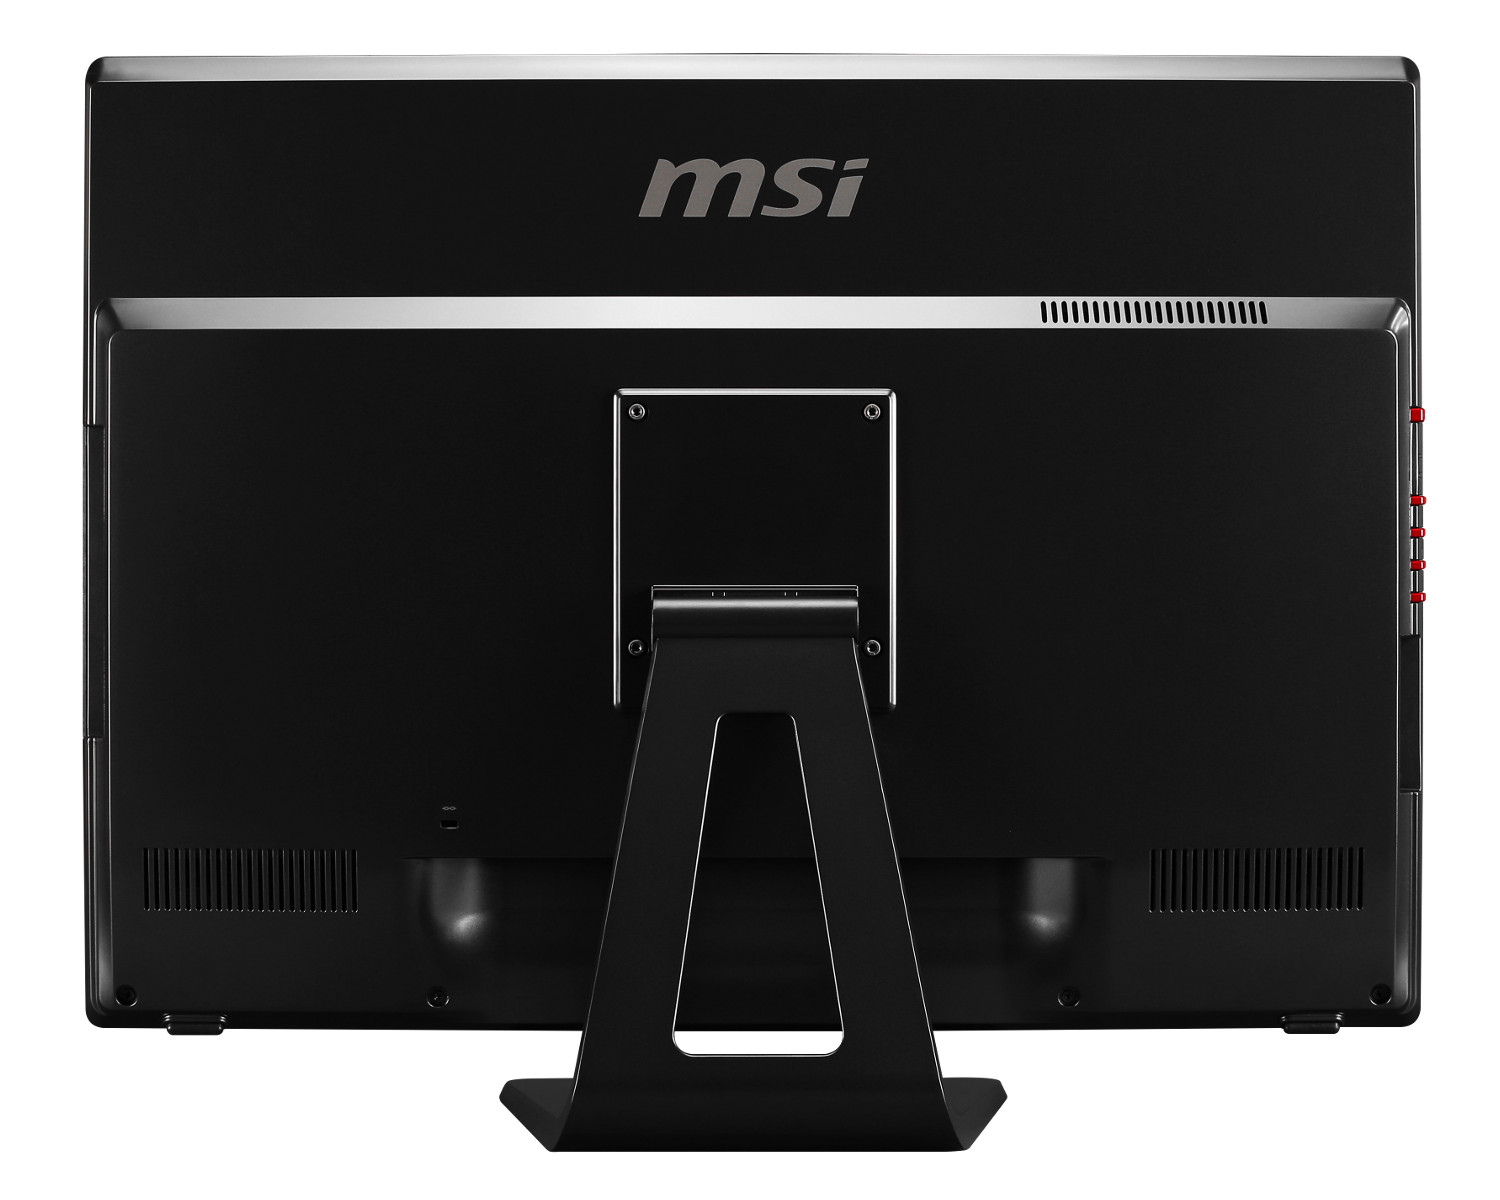 msi gaming 27 6qd 017eu ordinateur de bureau ordinateurpascher. Black Bedroom Furniture Sets. Home Design Ideas